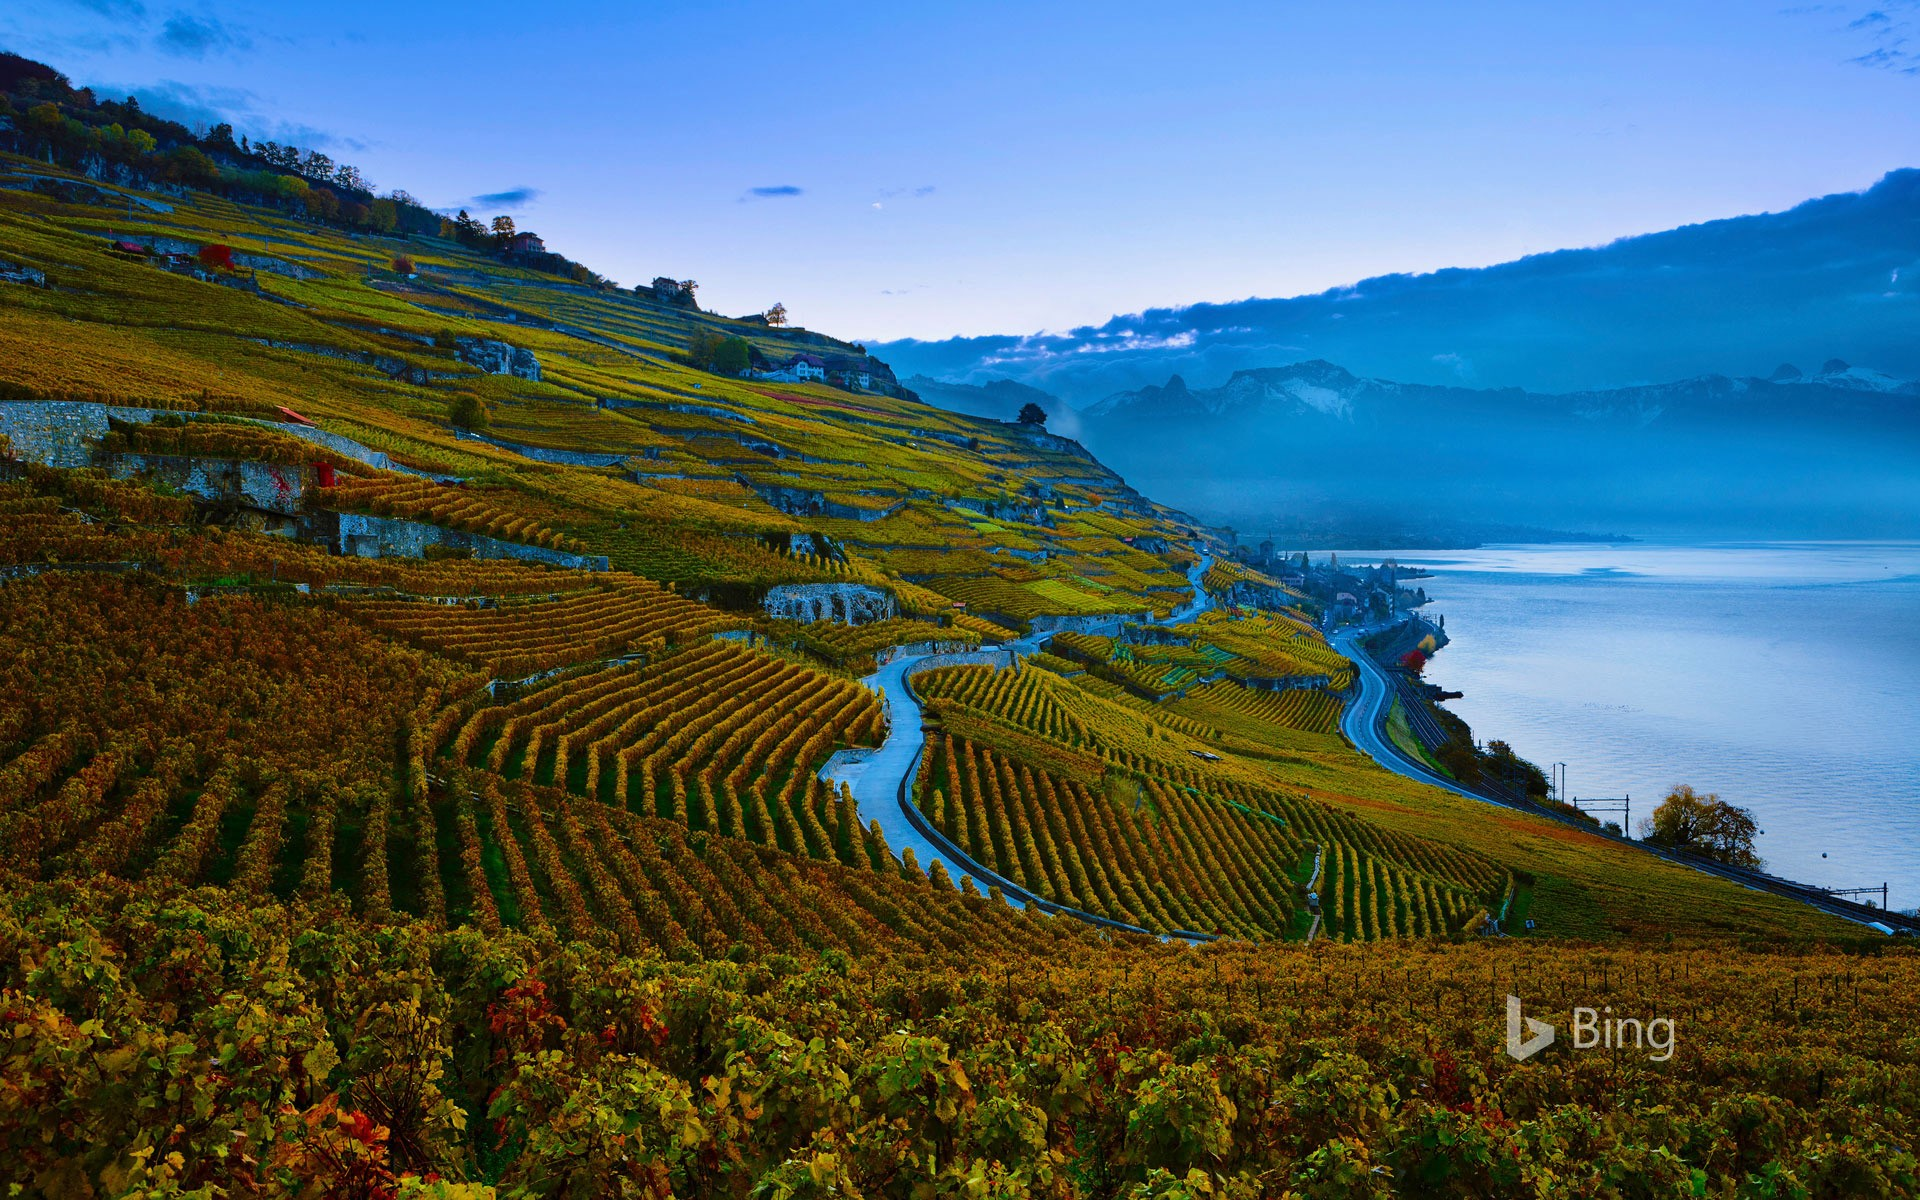 Terraced vineyards of the Lavaux region on the shores of Lake Geneva, Switzerland